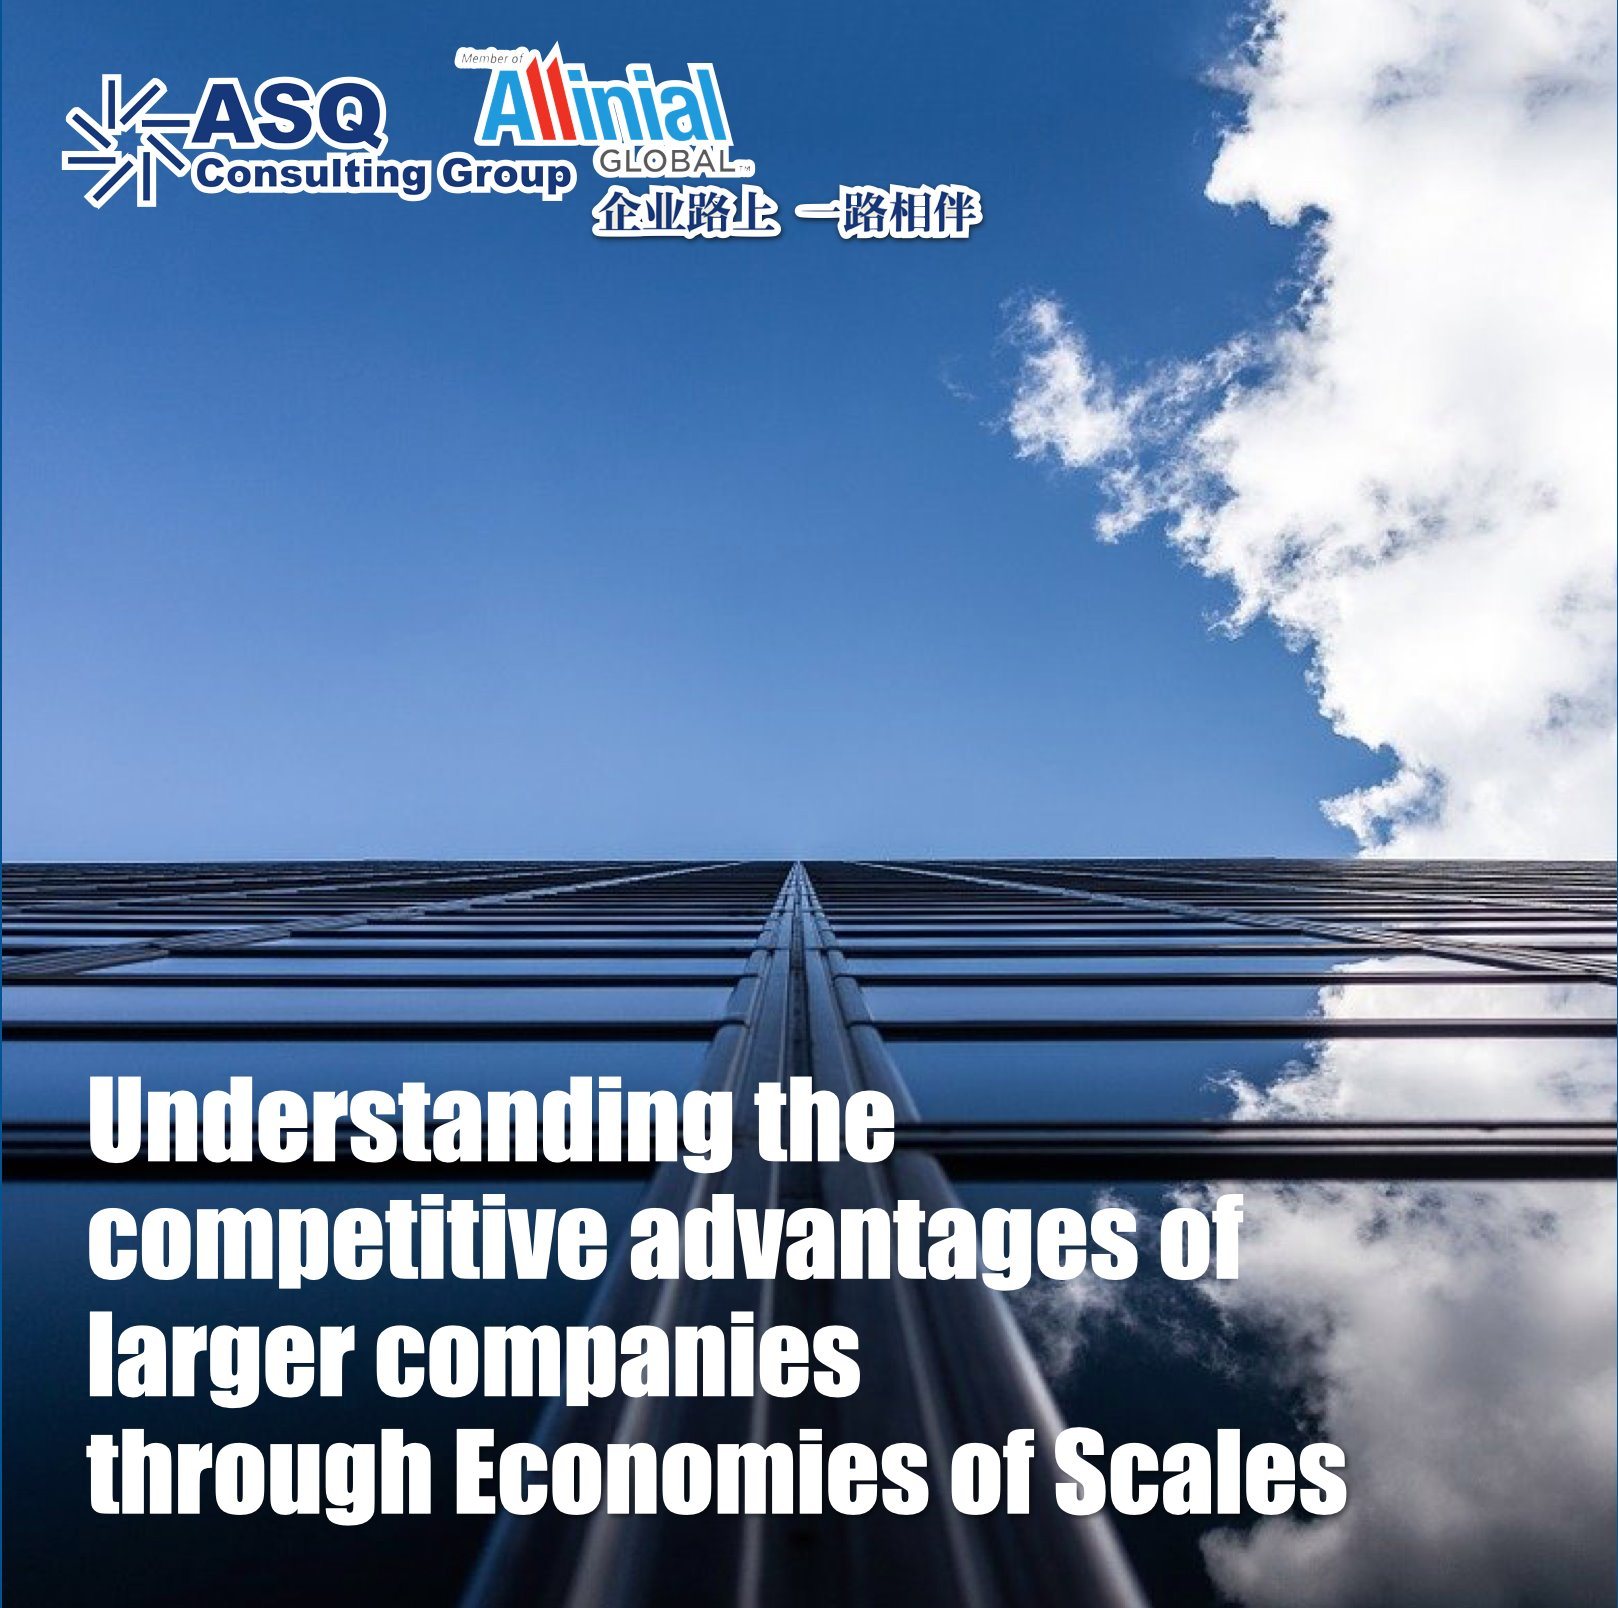 Understanding the competitive advantages of larger companies through Economies of Scales